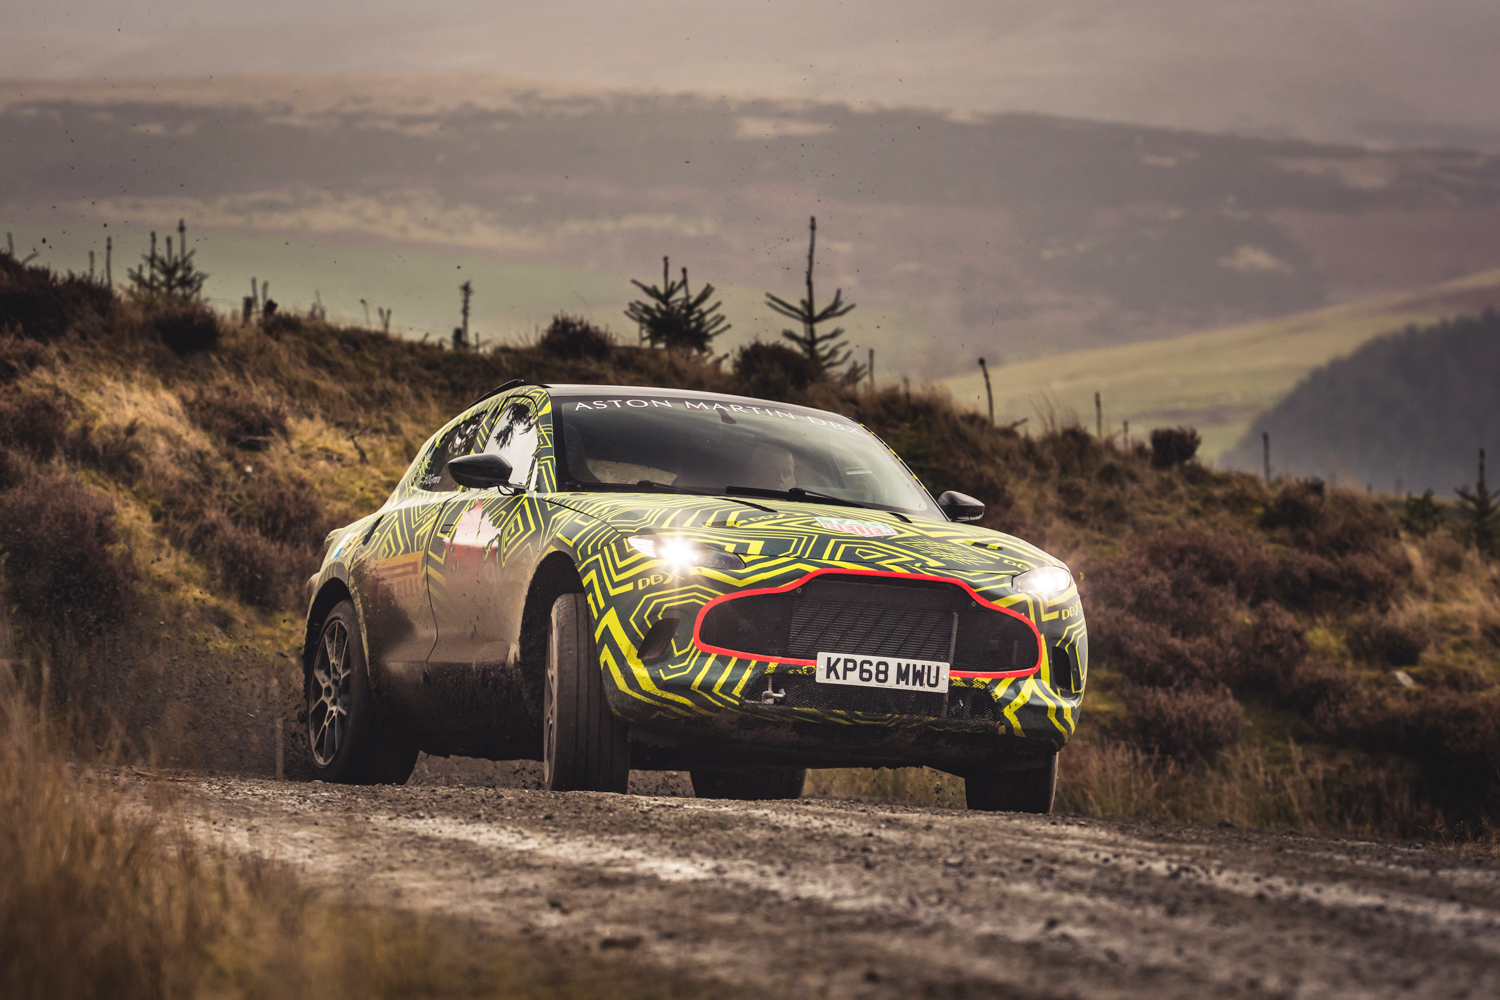 Aston Martin DBX prototype drifting off road